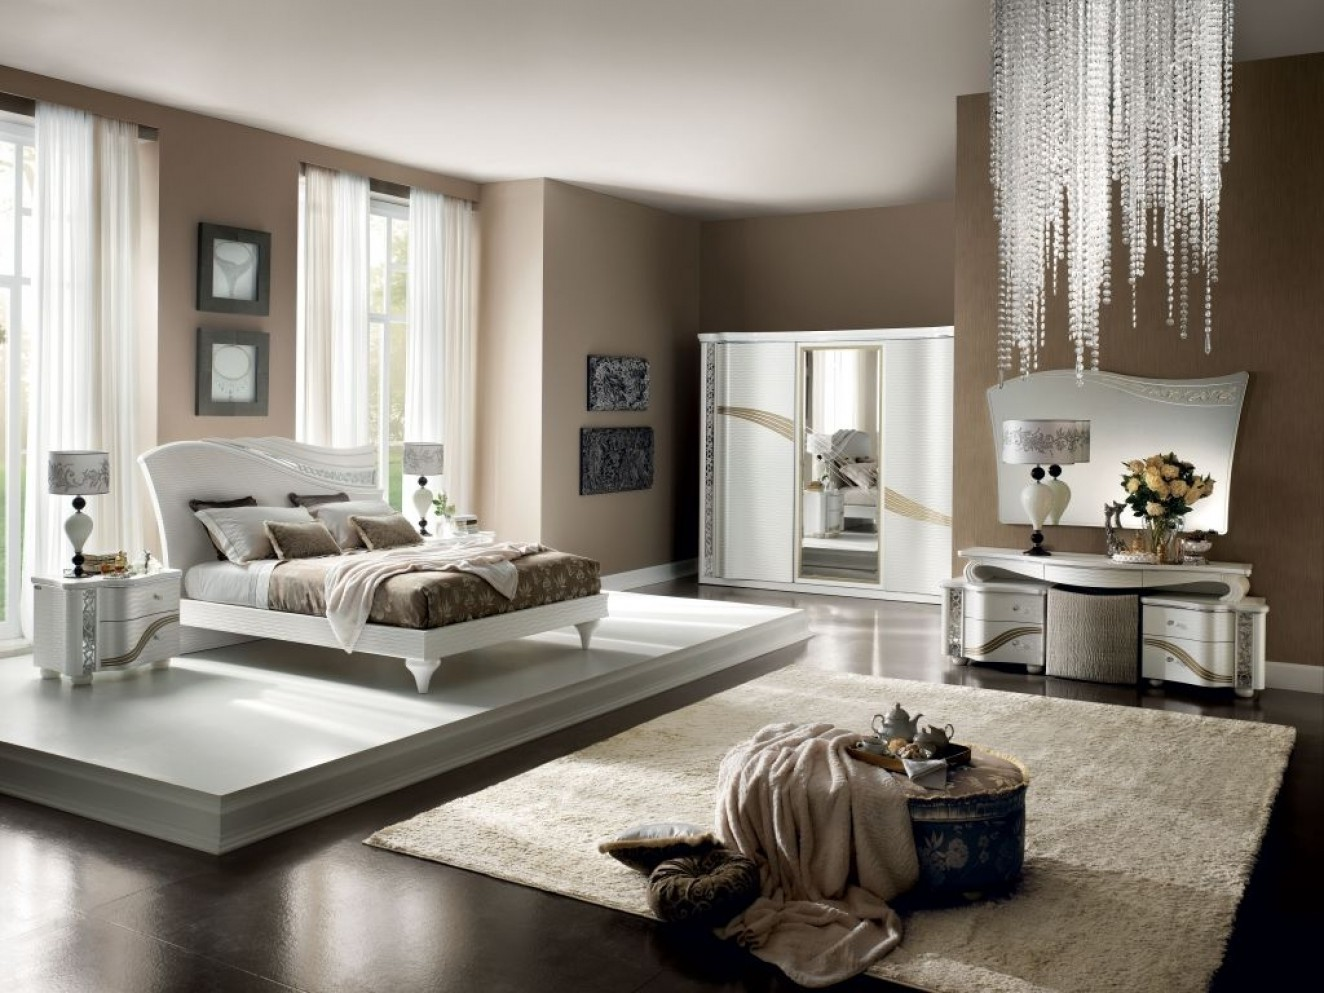 modele de chambre a coucher avec dressing chambre. Black Bedroom Furniture Sets. Home Design Ideas